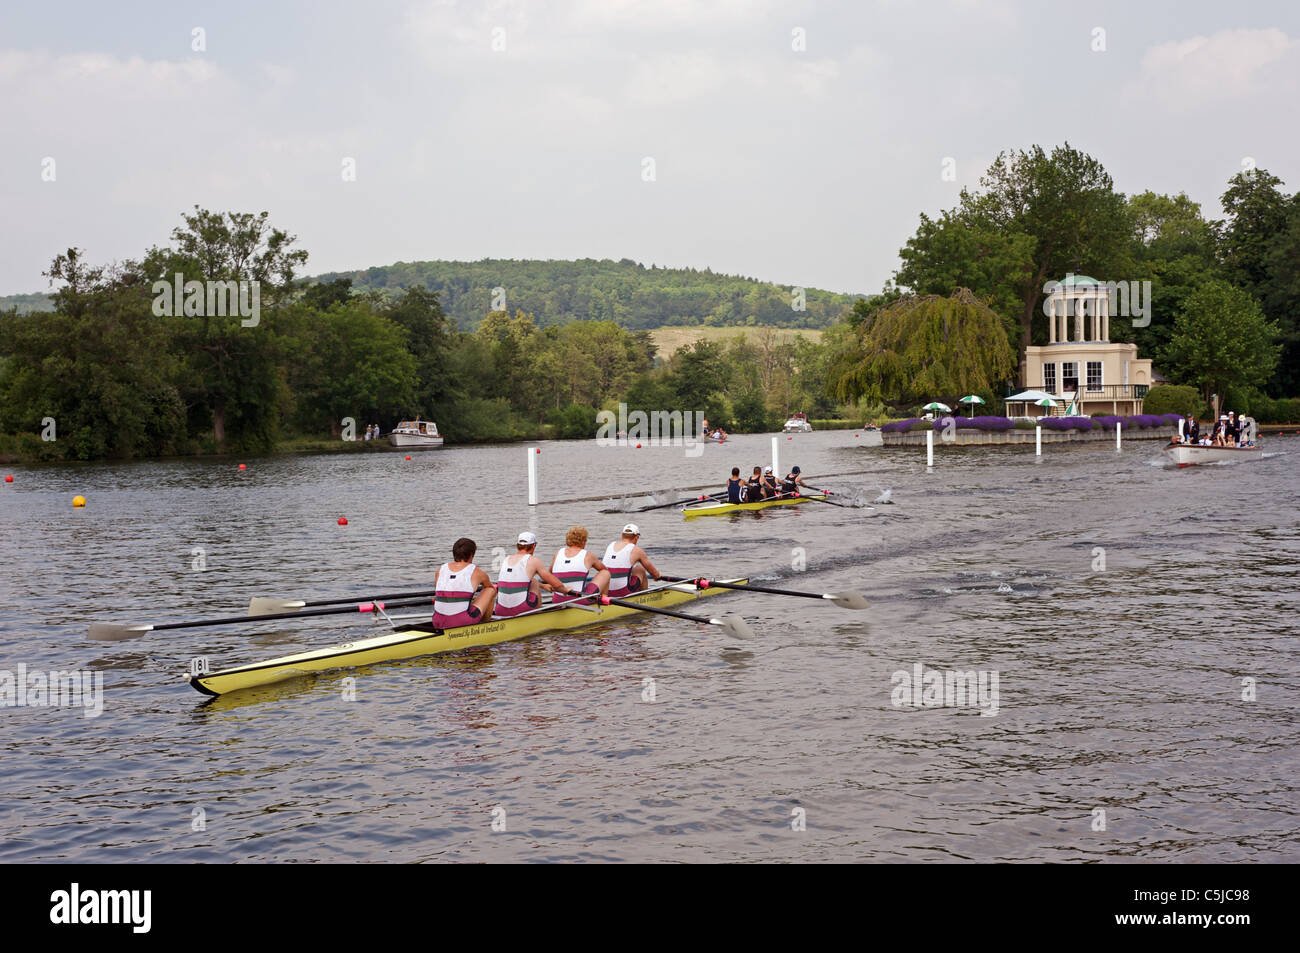 Henley Royal Regatta, Henley-on-Thames, Oxfordshire, UK. - Stock Image